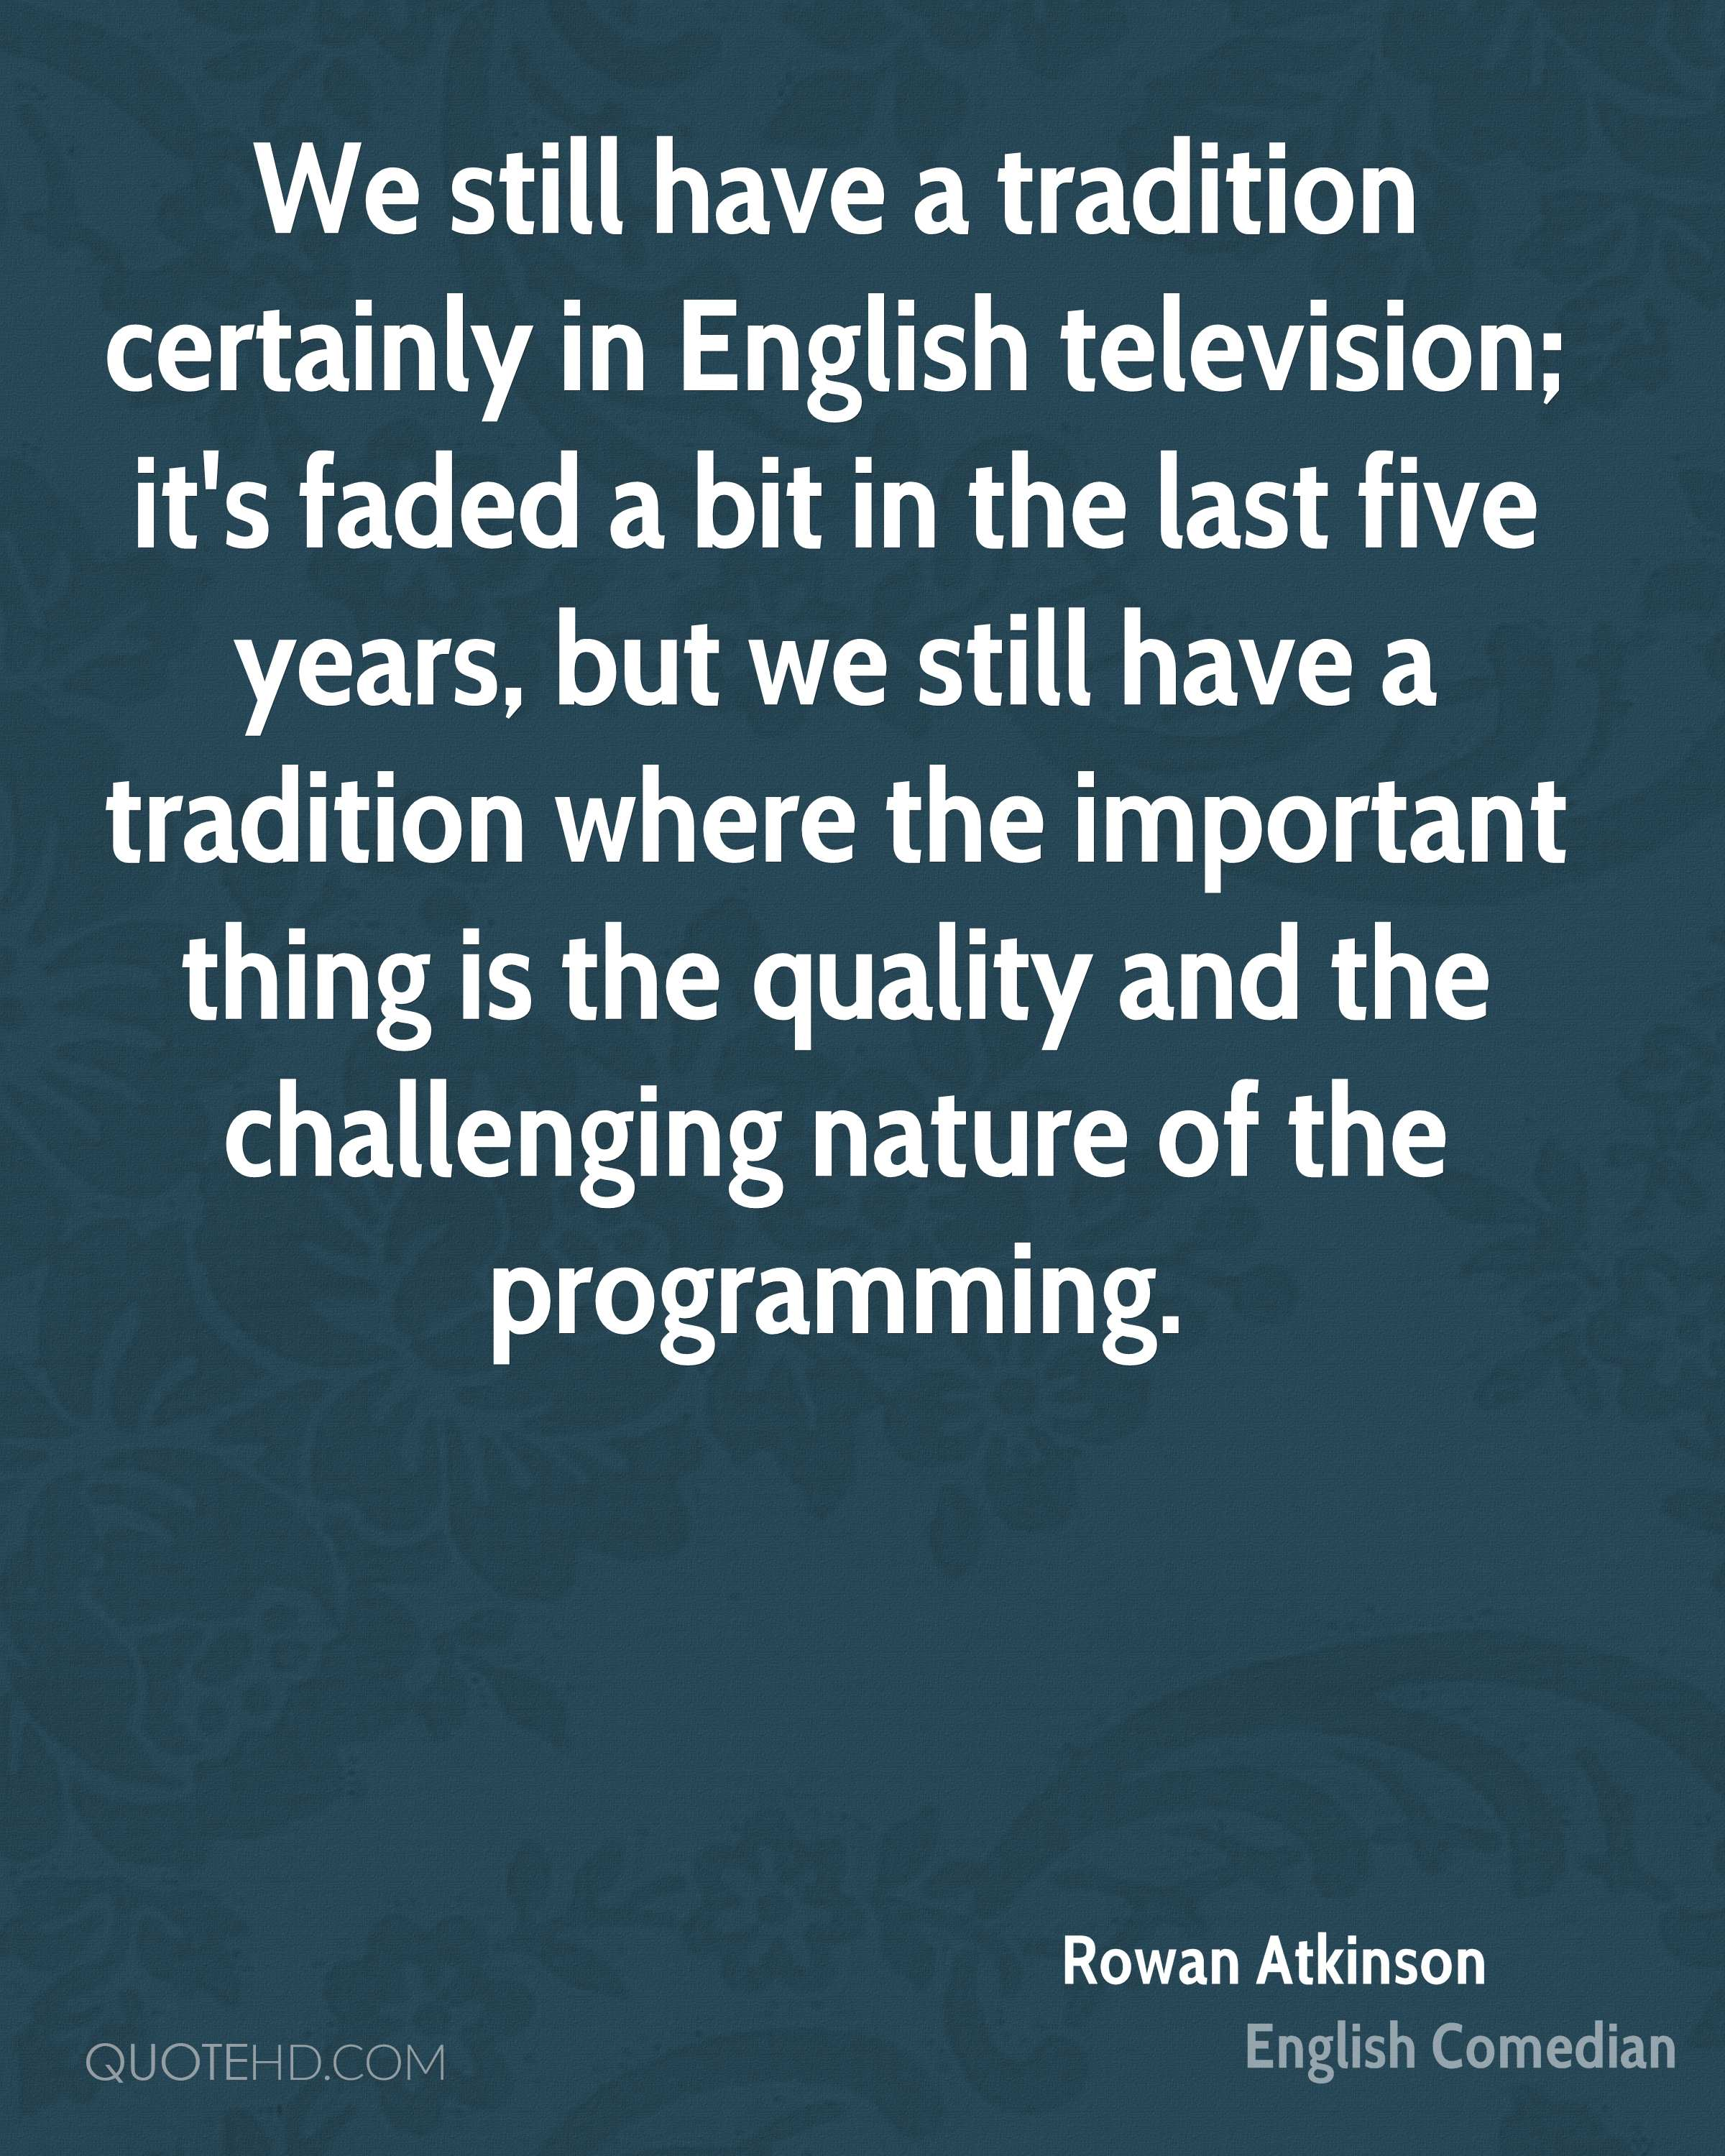 We still have a tradition certainly in English television; it's faded a bit in the last five years, but we still have a tradition where the important thing is the quality and the challenging nature of the programming.